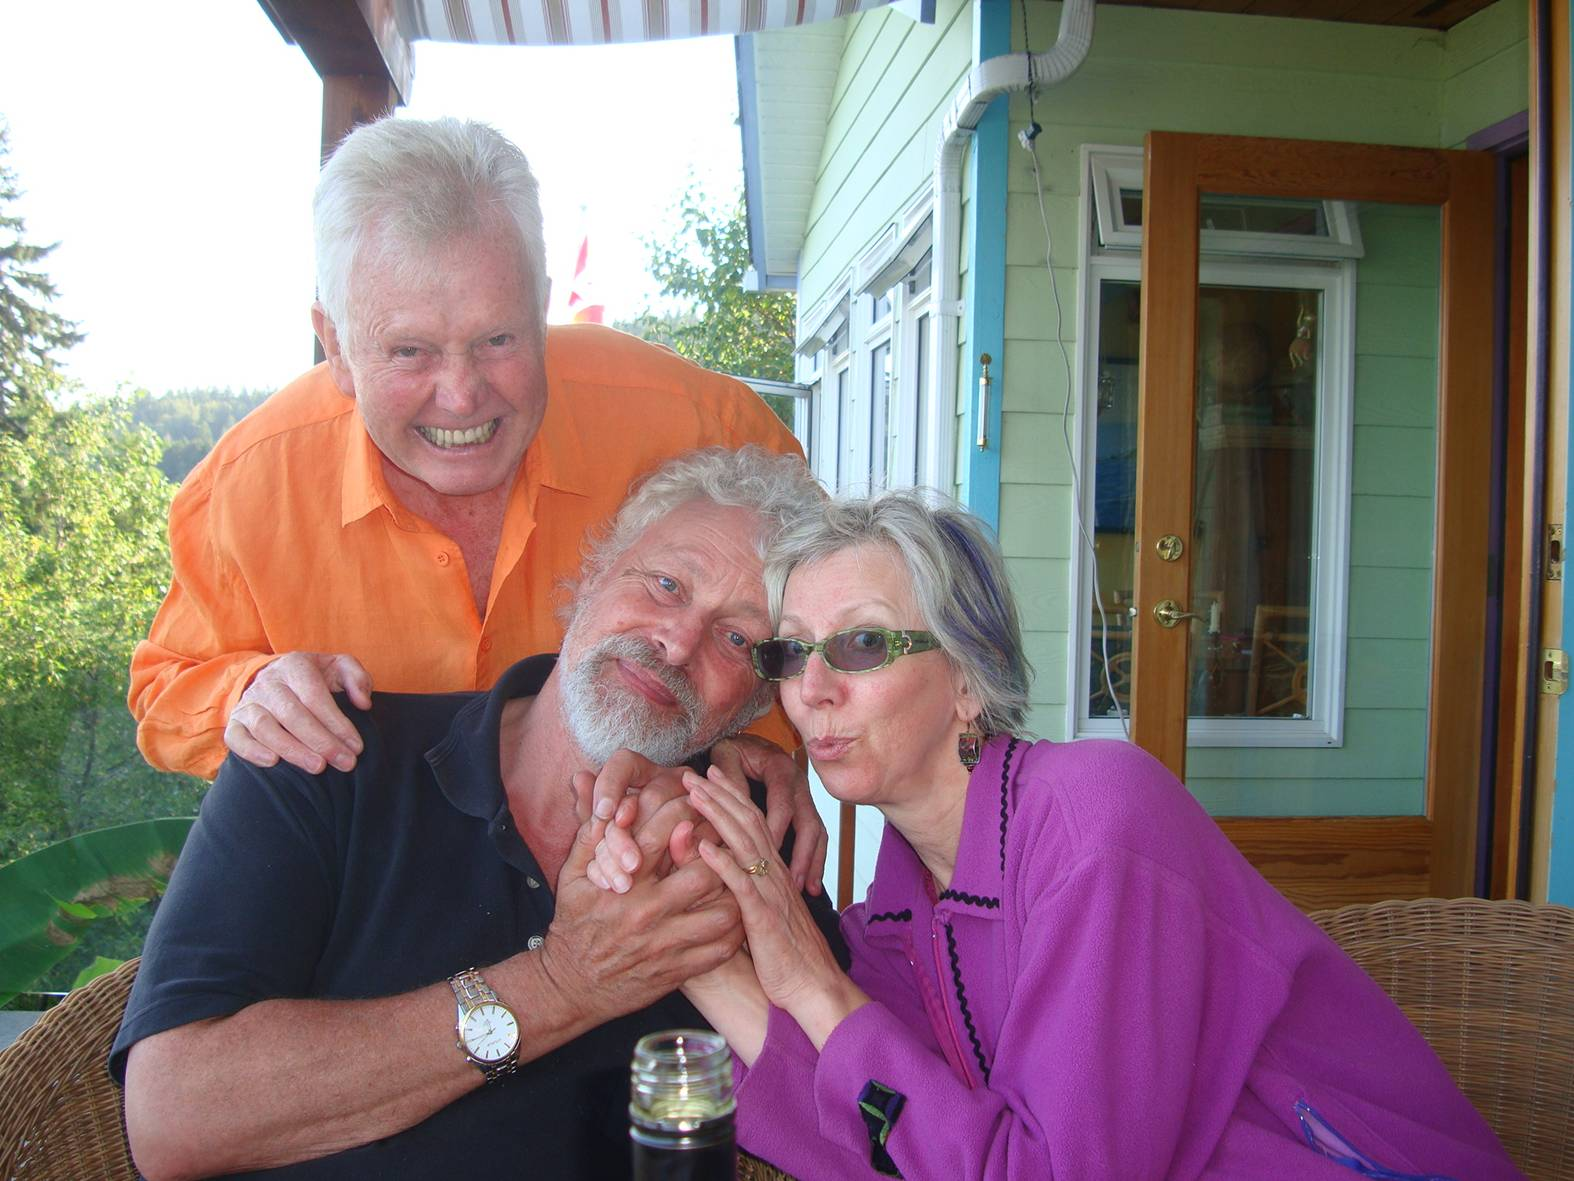 picture:  Dennis and Paula with David.  Delightful old friends.  Gibson's Landing, B.C.